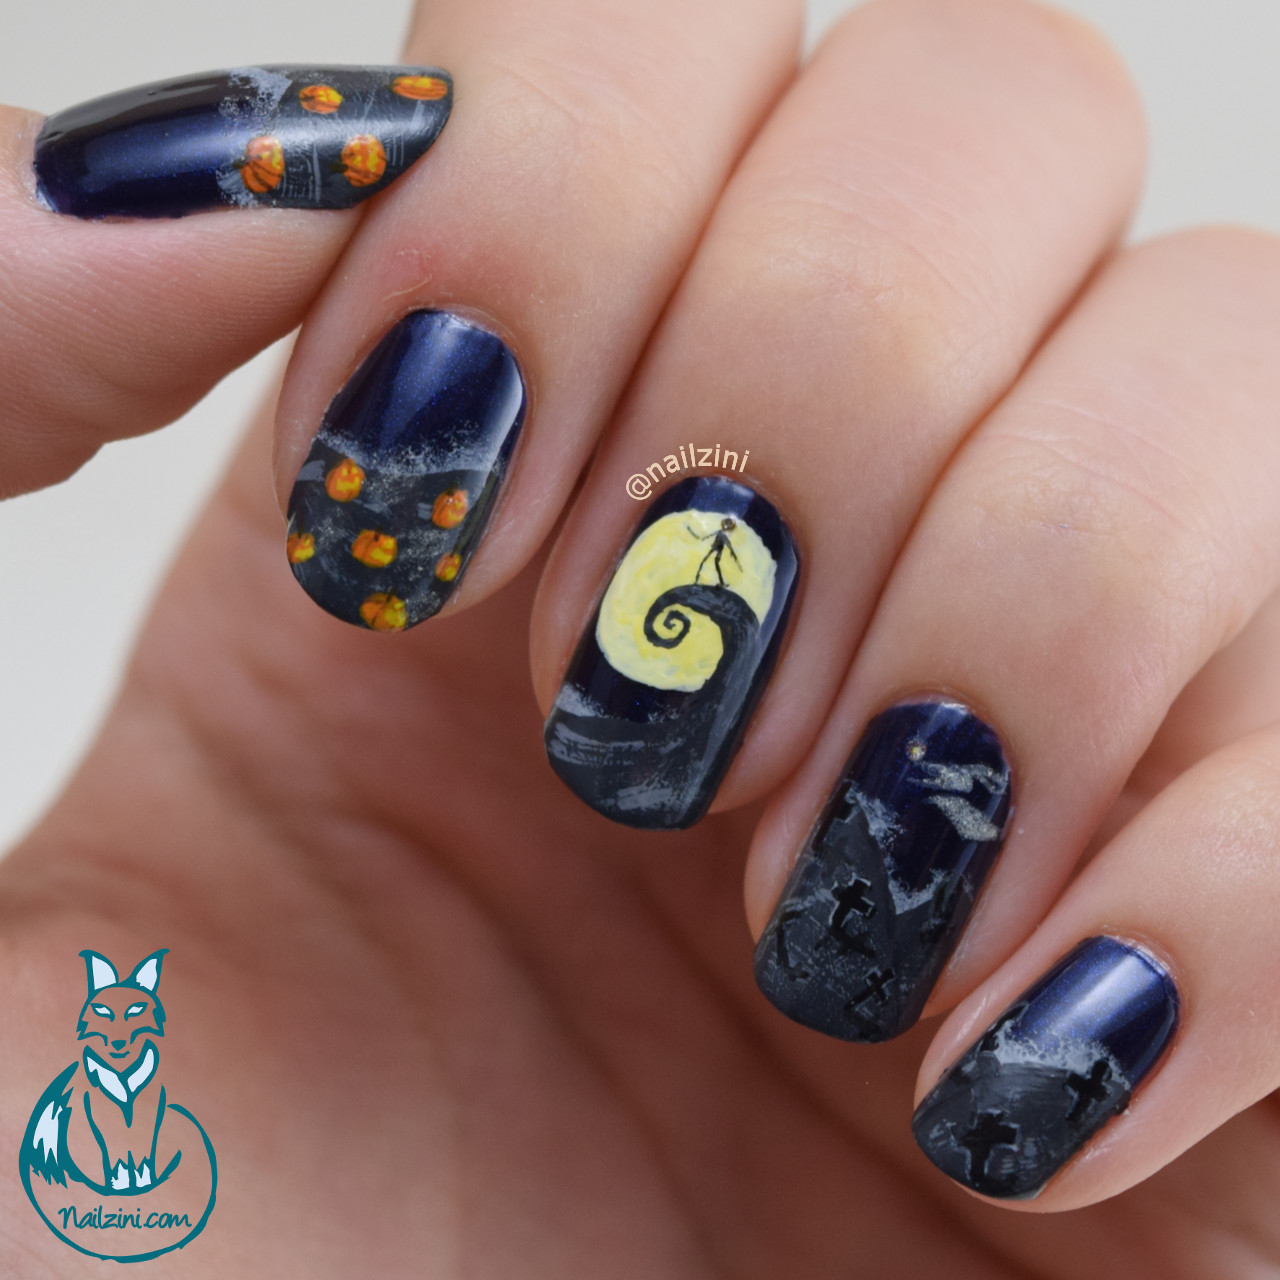 Nightmare Before Christmas Nail Art | Nailzini: A Nail Art Blog